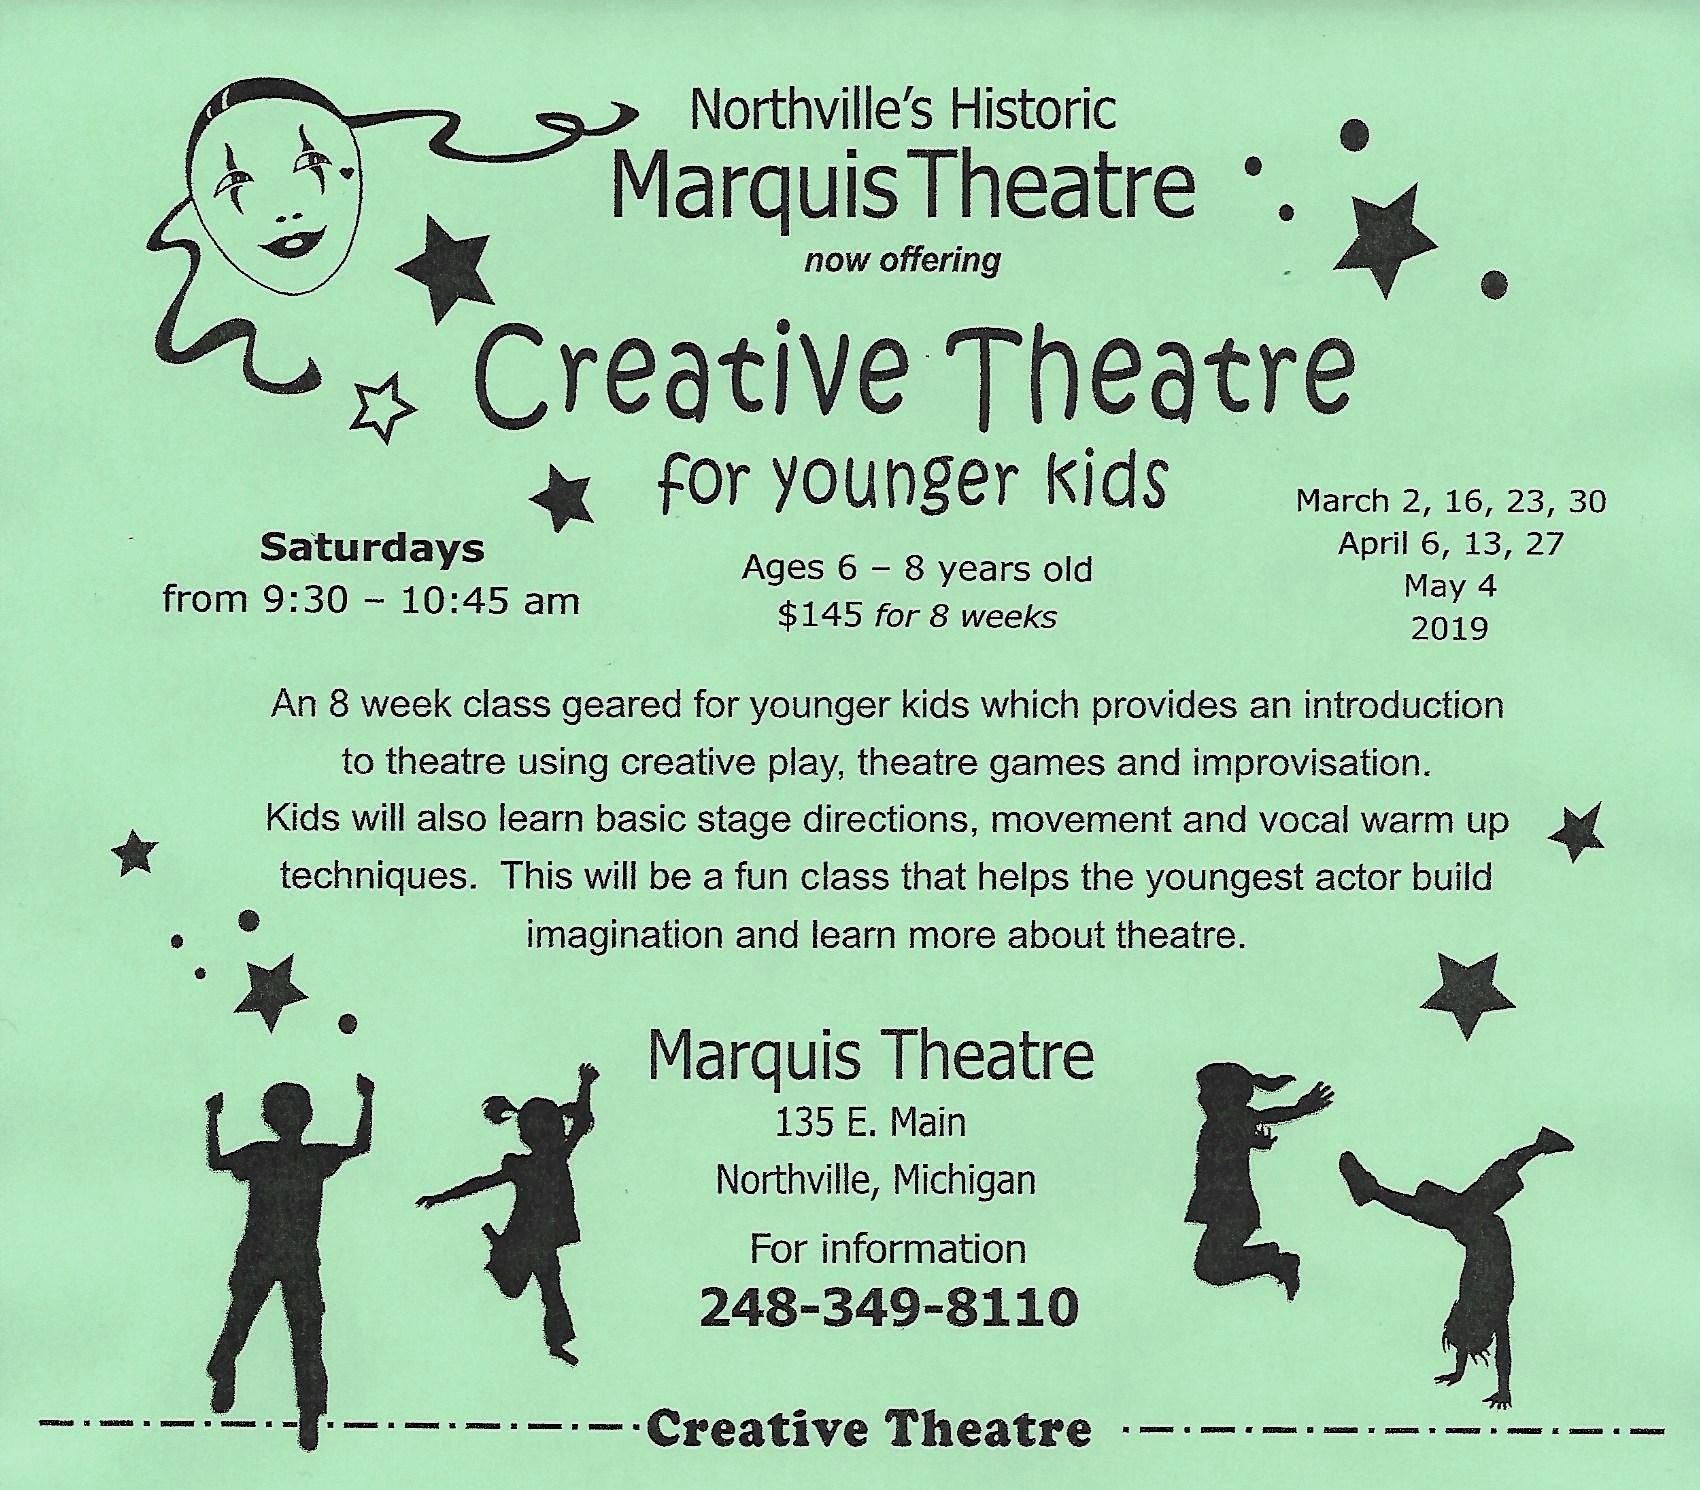 March Calendar Kids Más Populares Creative theatre Acting Classes for Kids Ages 6 8 Marquis Of March Calendar Kids Más Recientes Free Printable toddler Weekly Calendar Projectsinparenting